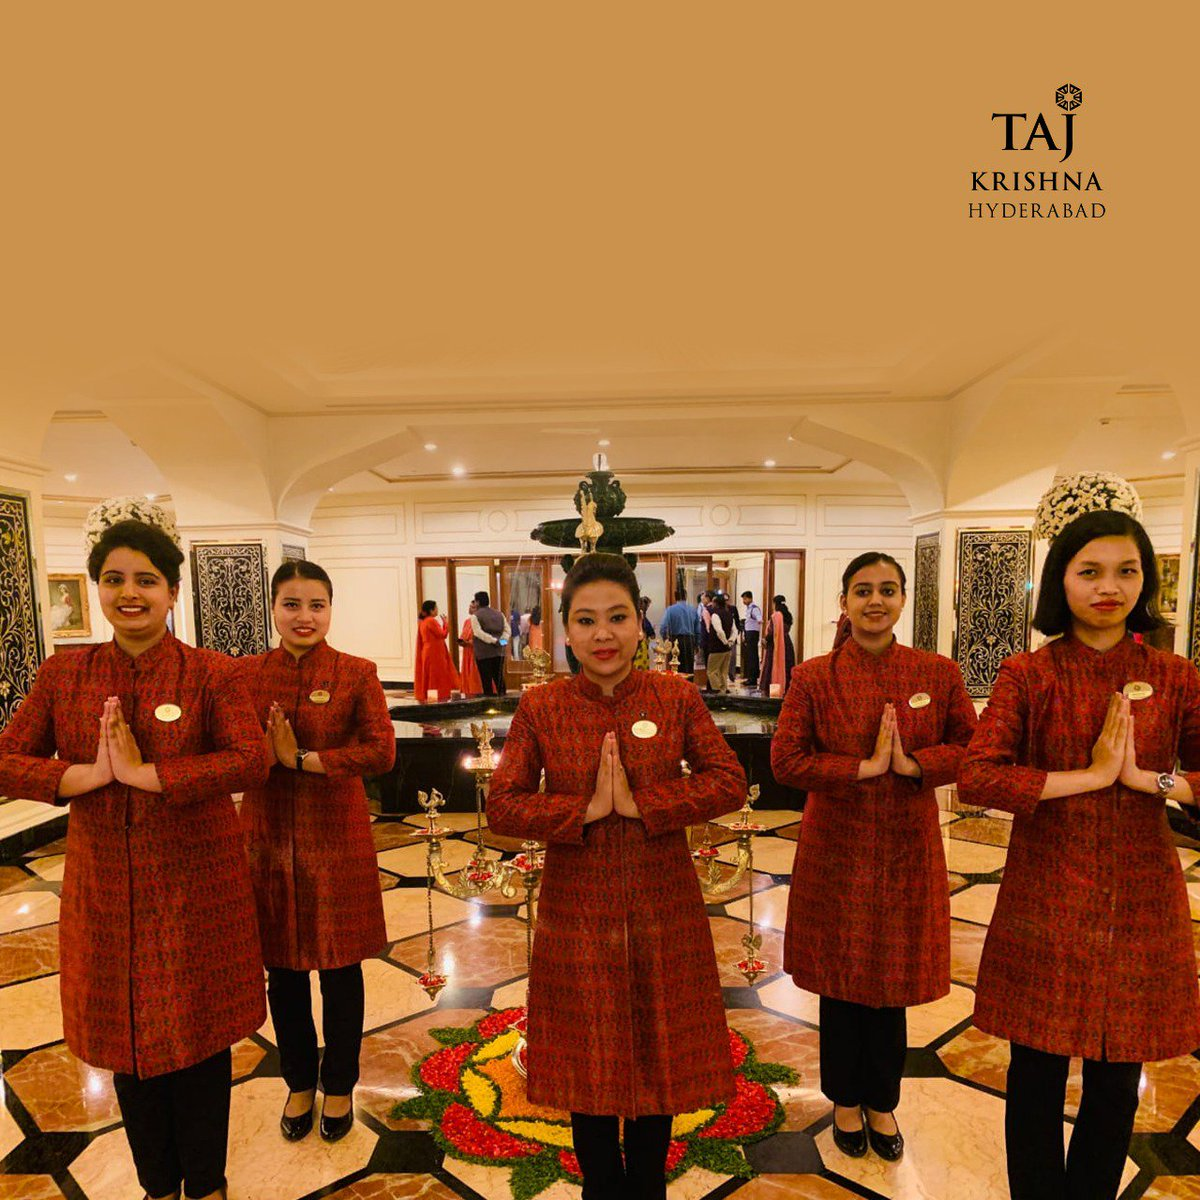 It was a celebration. Indeed. Warm smiles and love. All the way  #HappyWomensDay . . . #TajKrishnaHyderabad #womeninpower #InternationalWomensDay #TajKrishna #BalanceForBetter